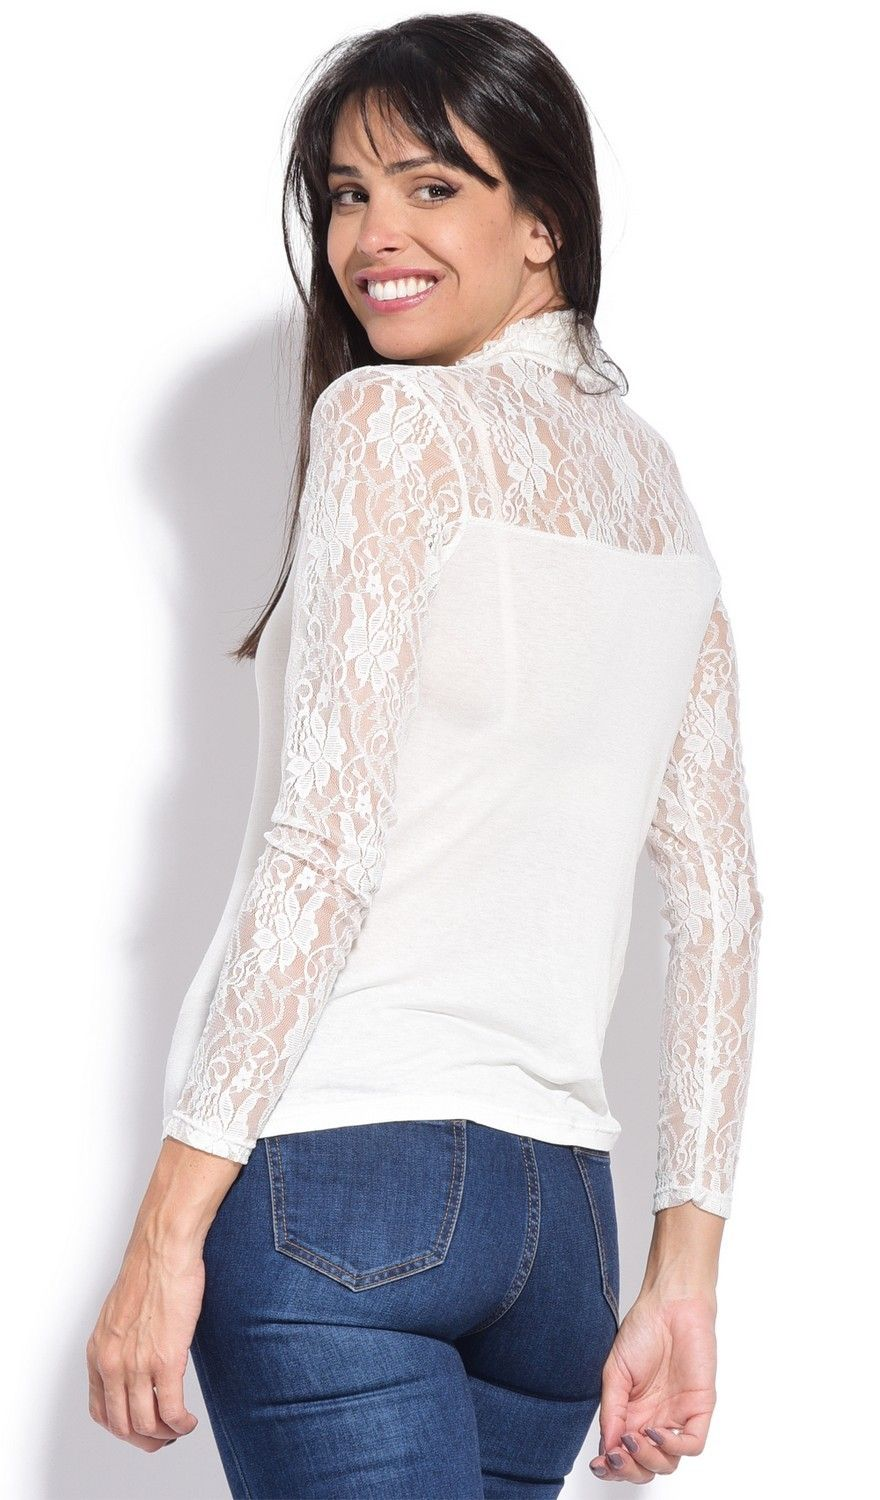 Assuili Ruffle Neck Long Sleeve Lace Top in Ivory